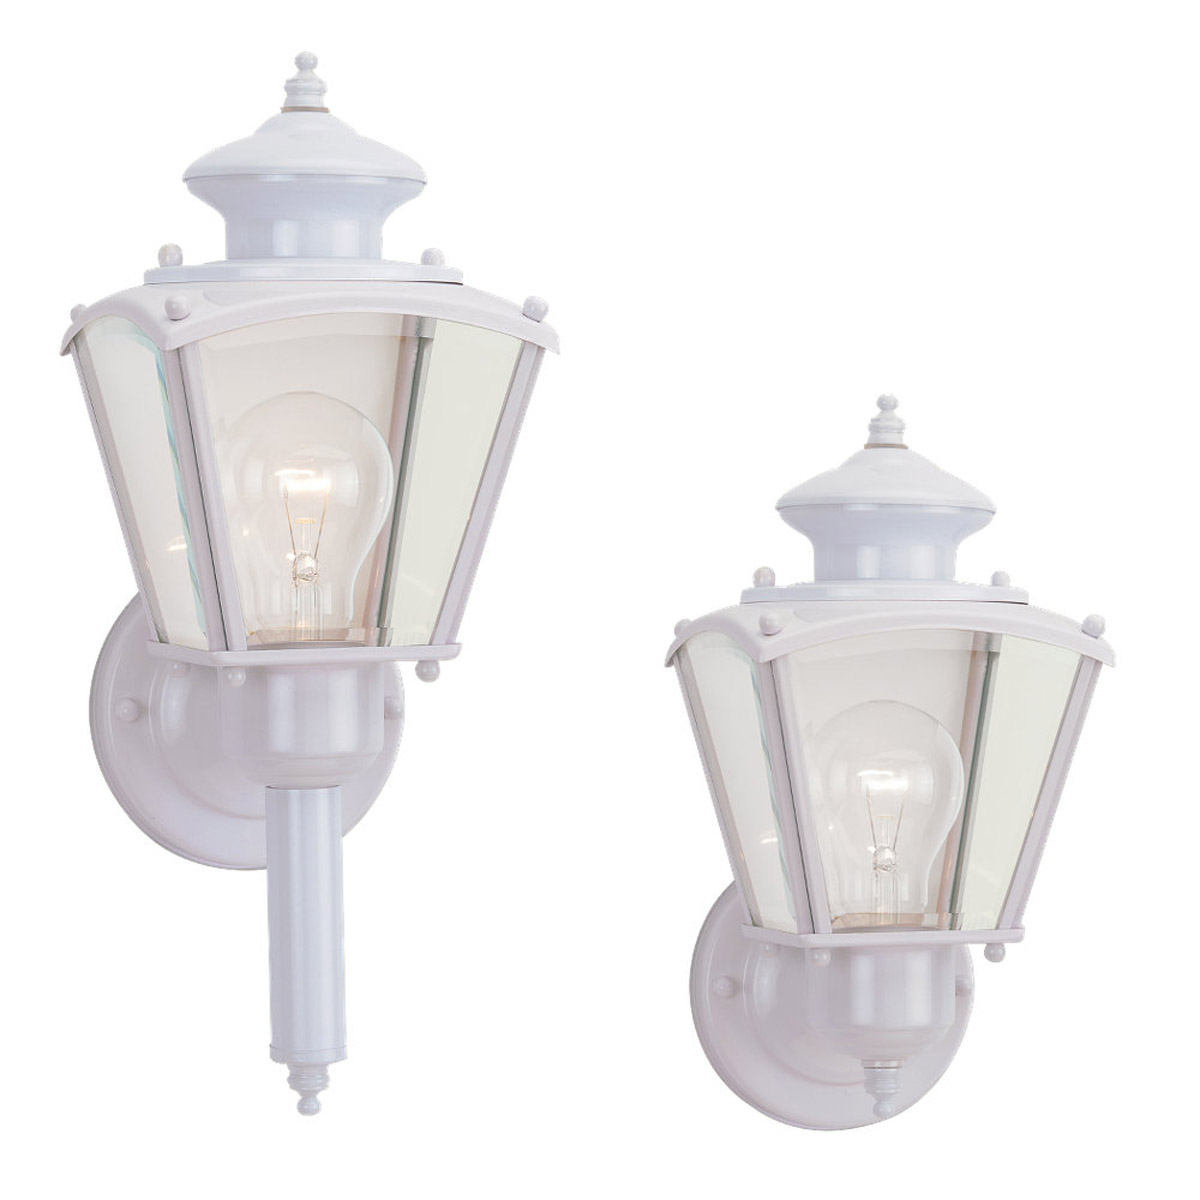 Sea Gull Lighting New Castle 1 Light Outdoor Wall Lantern in White 8503-15 photo